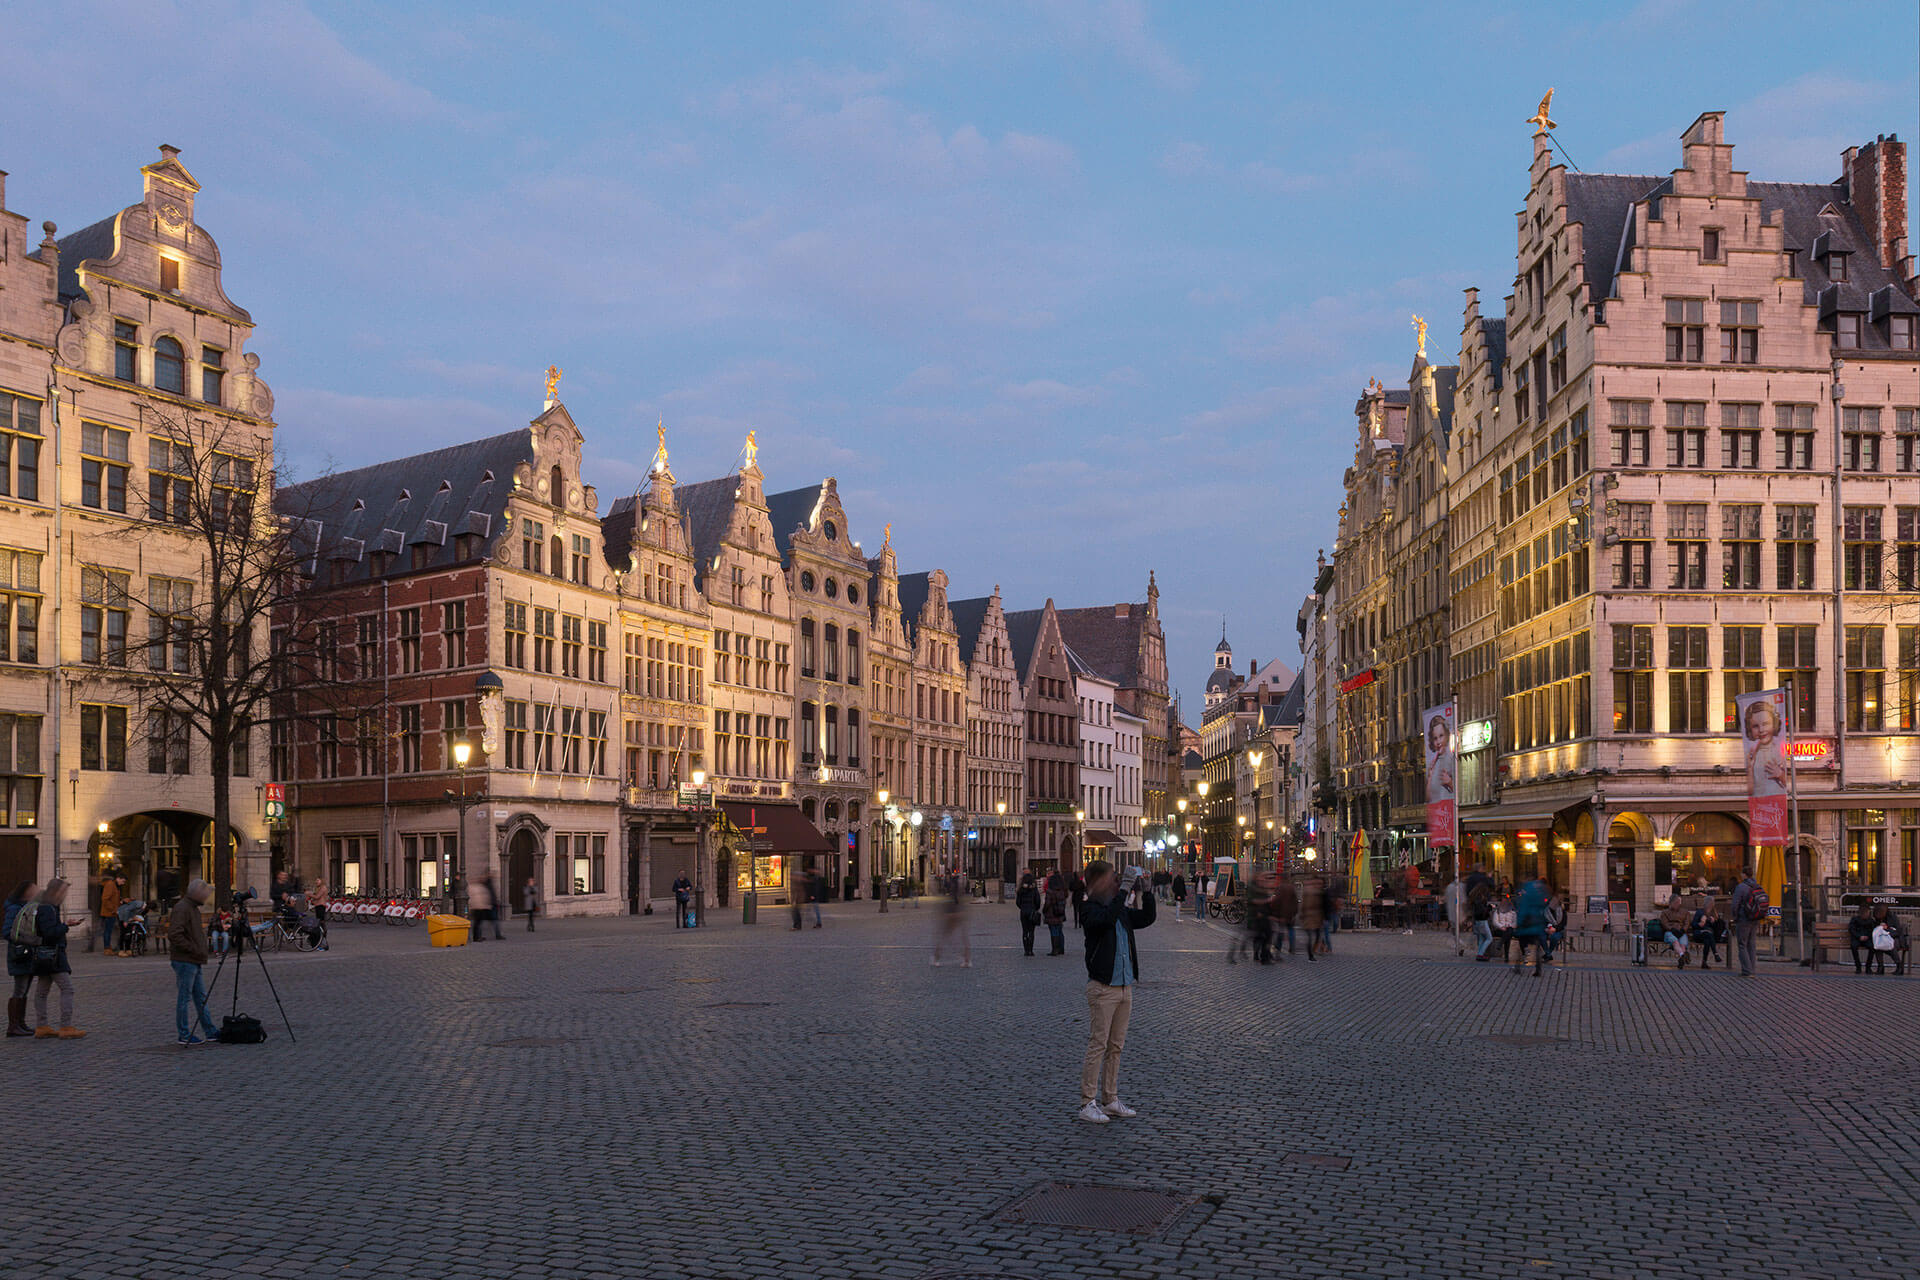 Schréder floodlights illuminate Grote Markt in Antwerp, creating a warm nocturnal ambiance